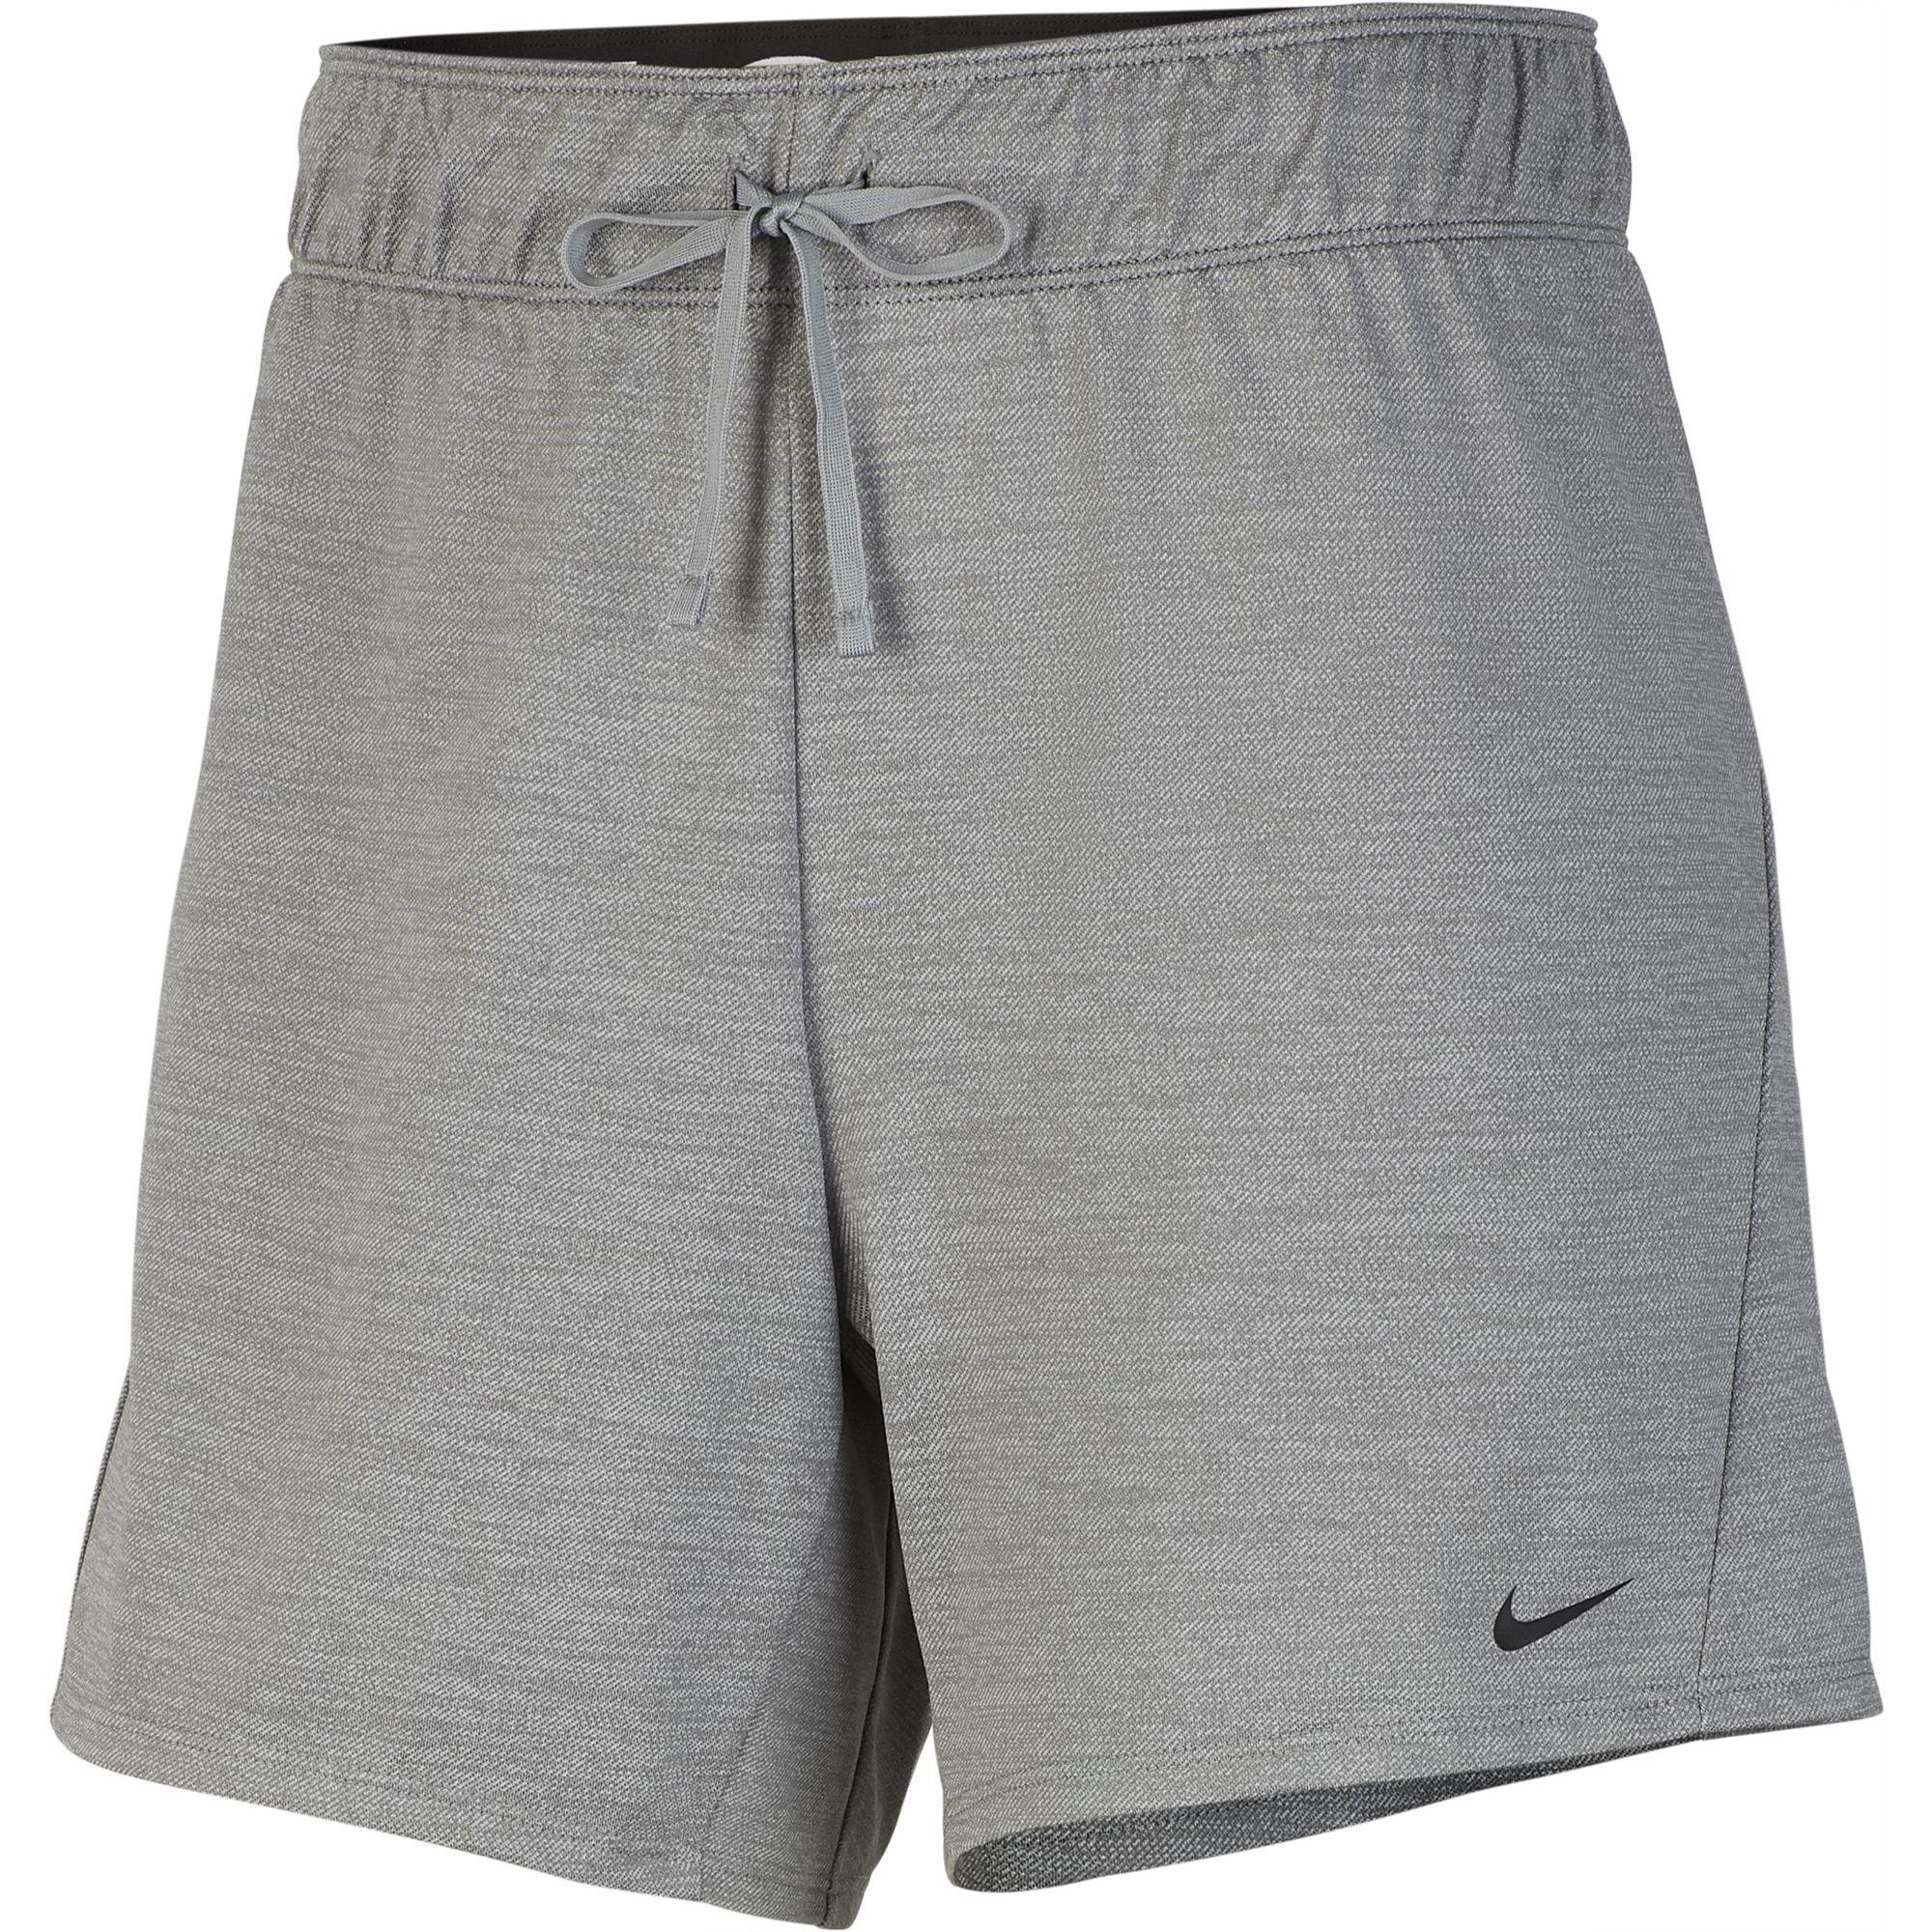 Women's Dri Fit Shorts – Dri fit shorts and nike girls.